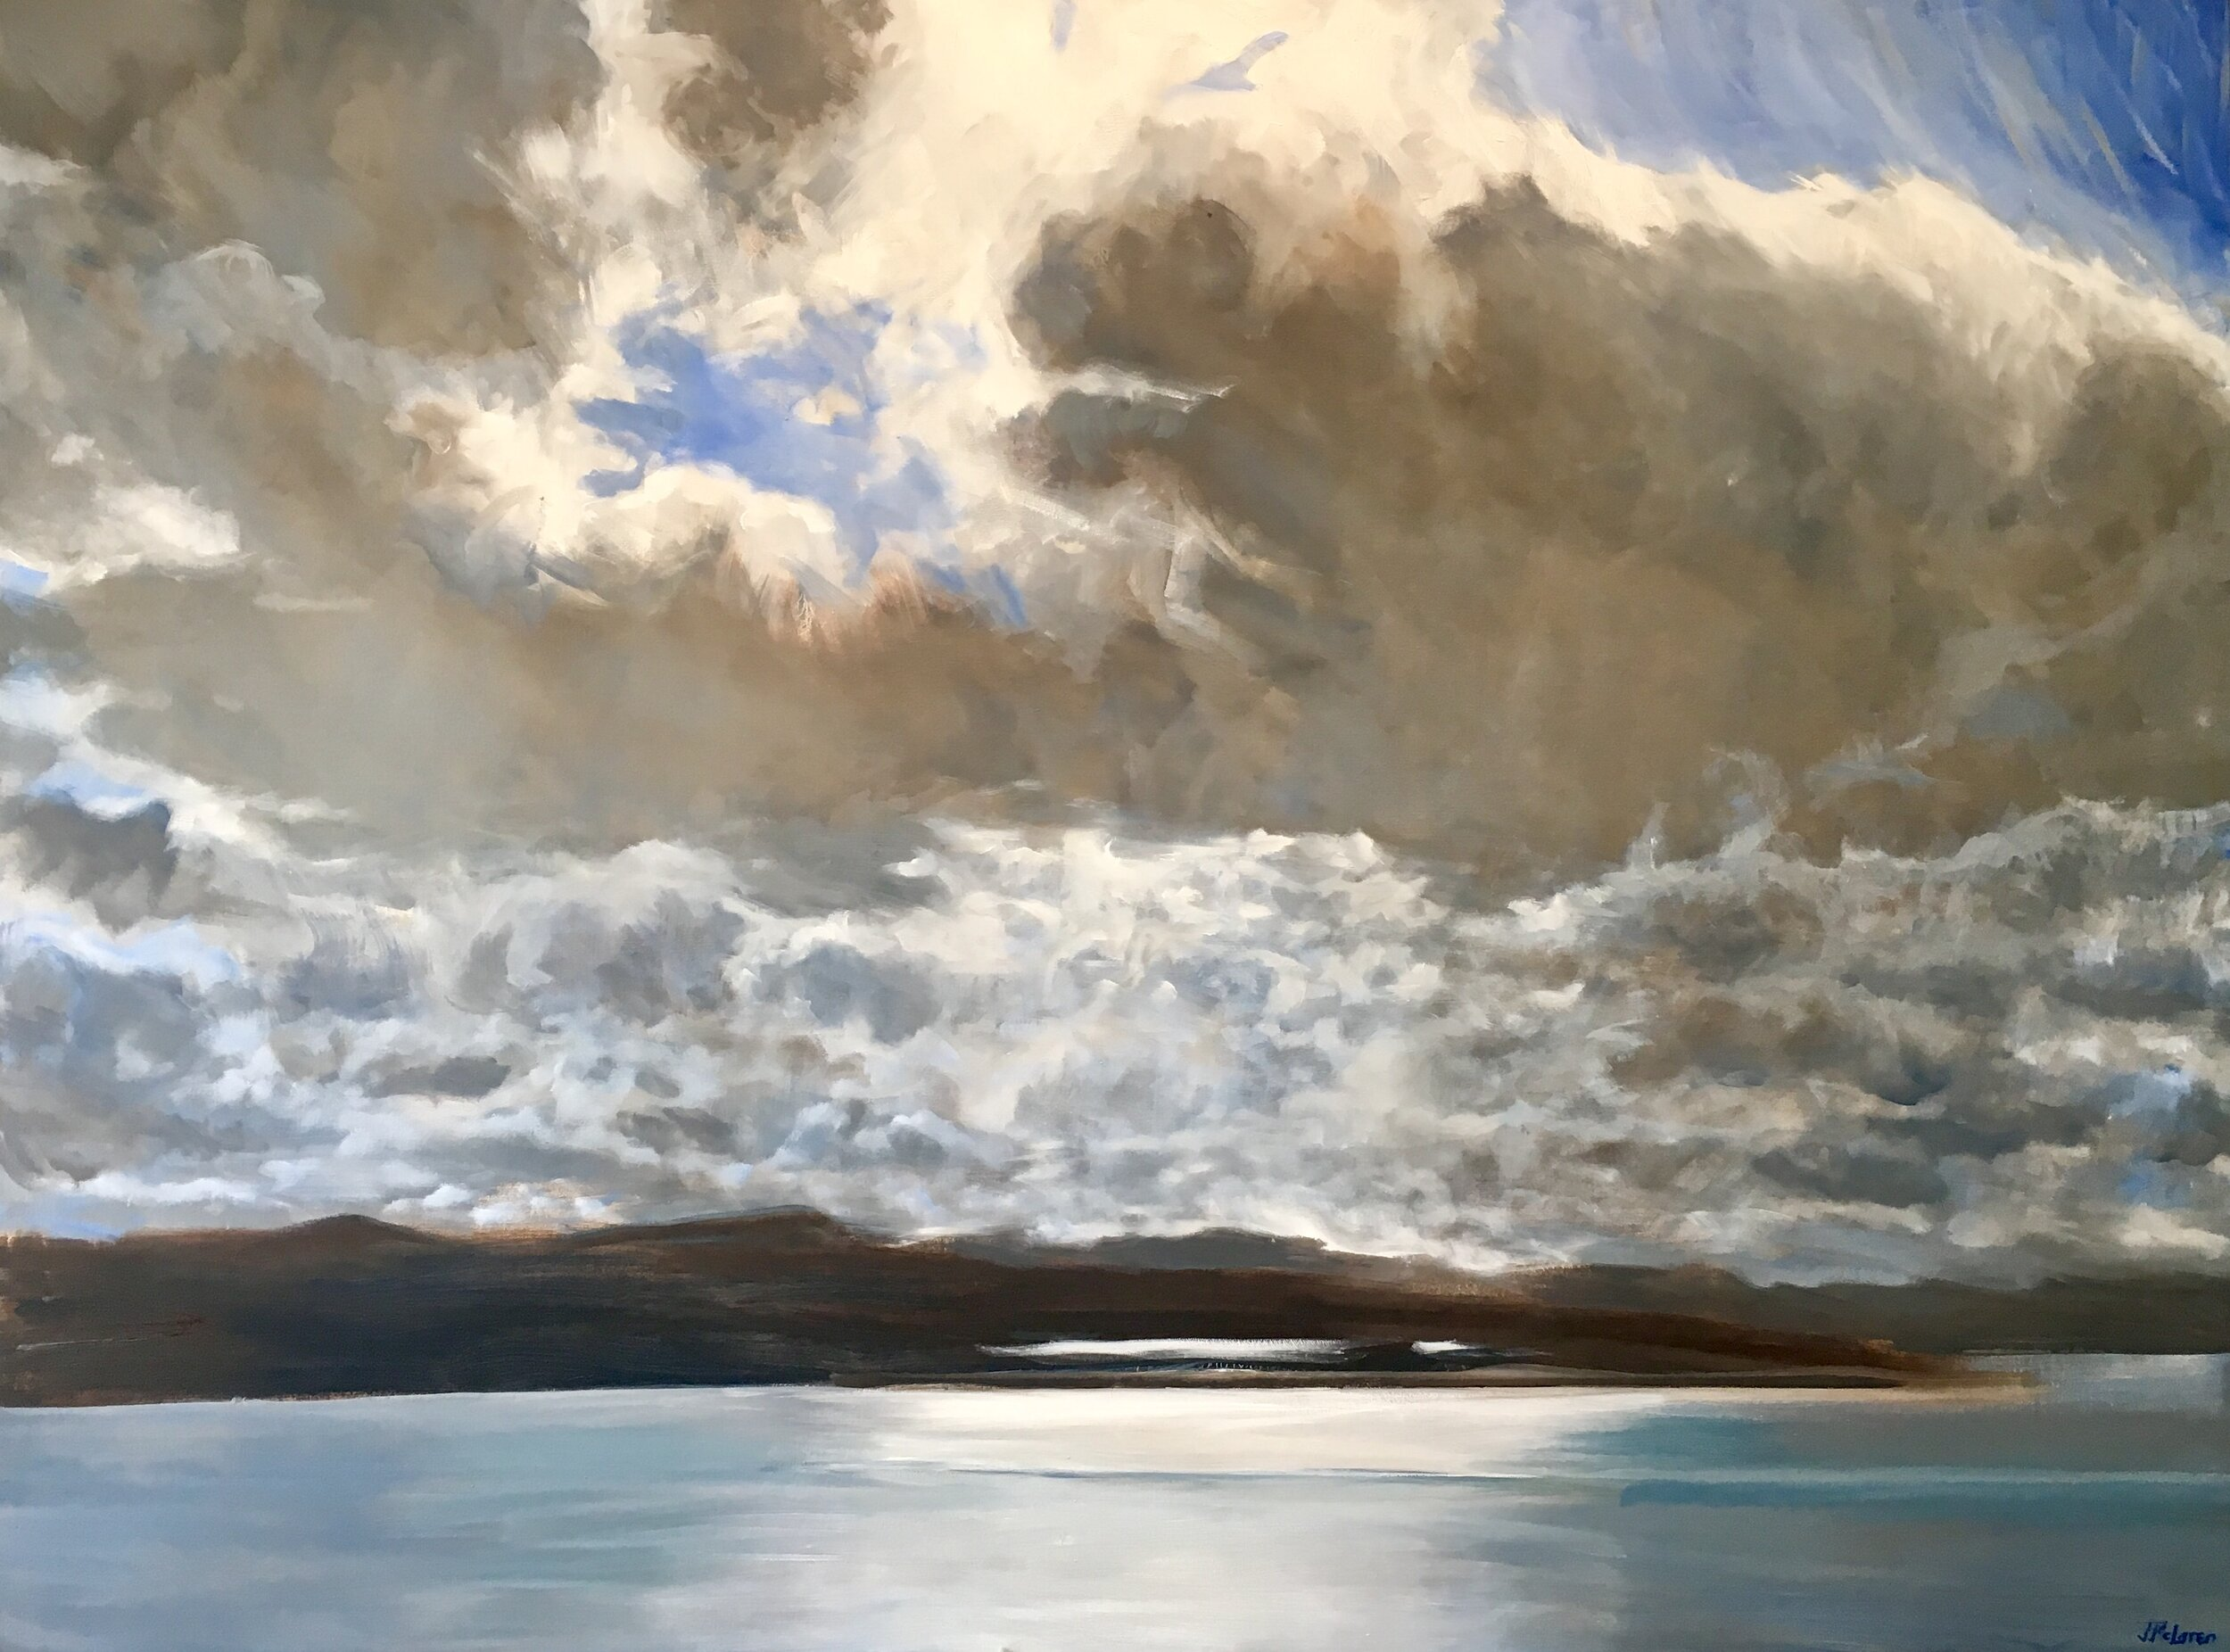 "Break in the Clouds. Oil on canvas 48"" x 36"". Love the combining of water, shore and sky - a simple pallet and big drama."